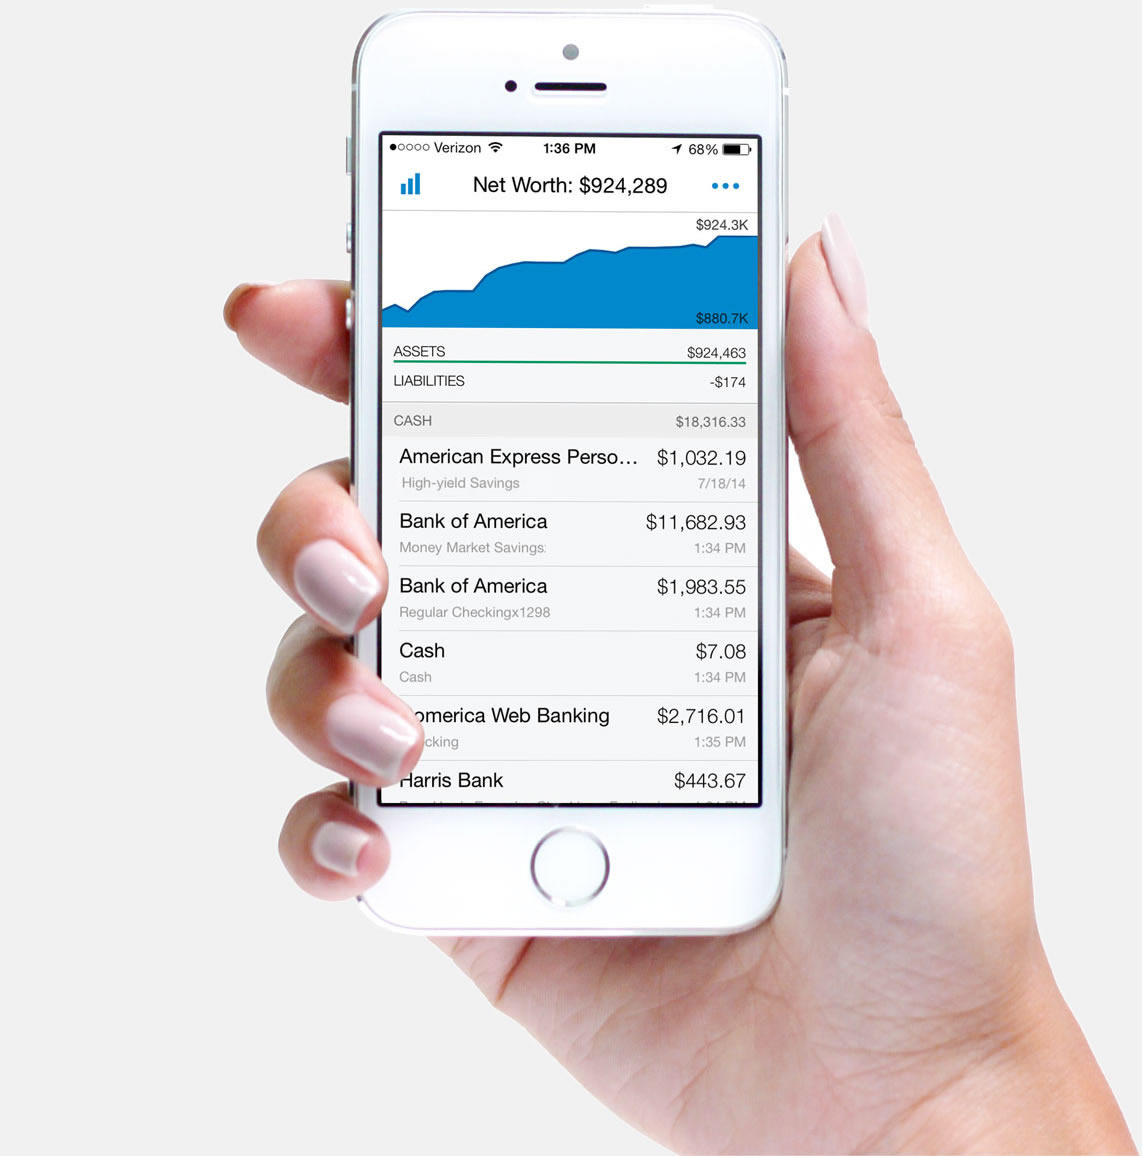 capital personal app personalcapital apple mobile financial cap wealth pers analyze investments tool